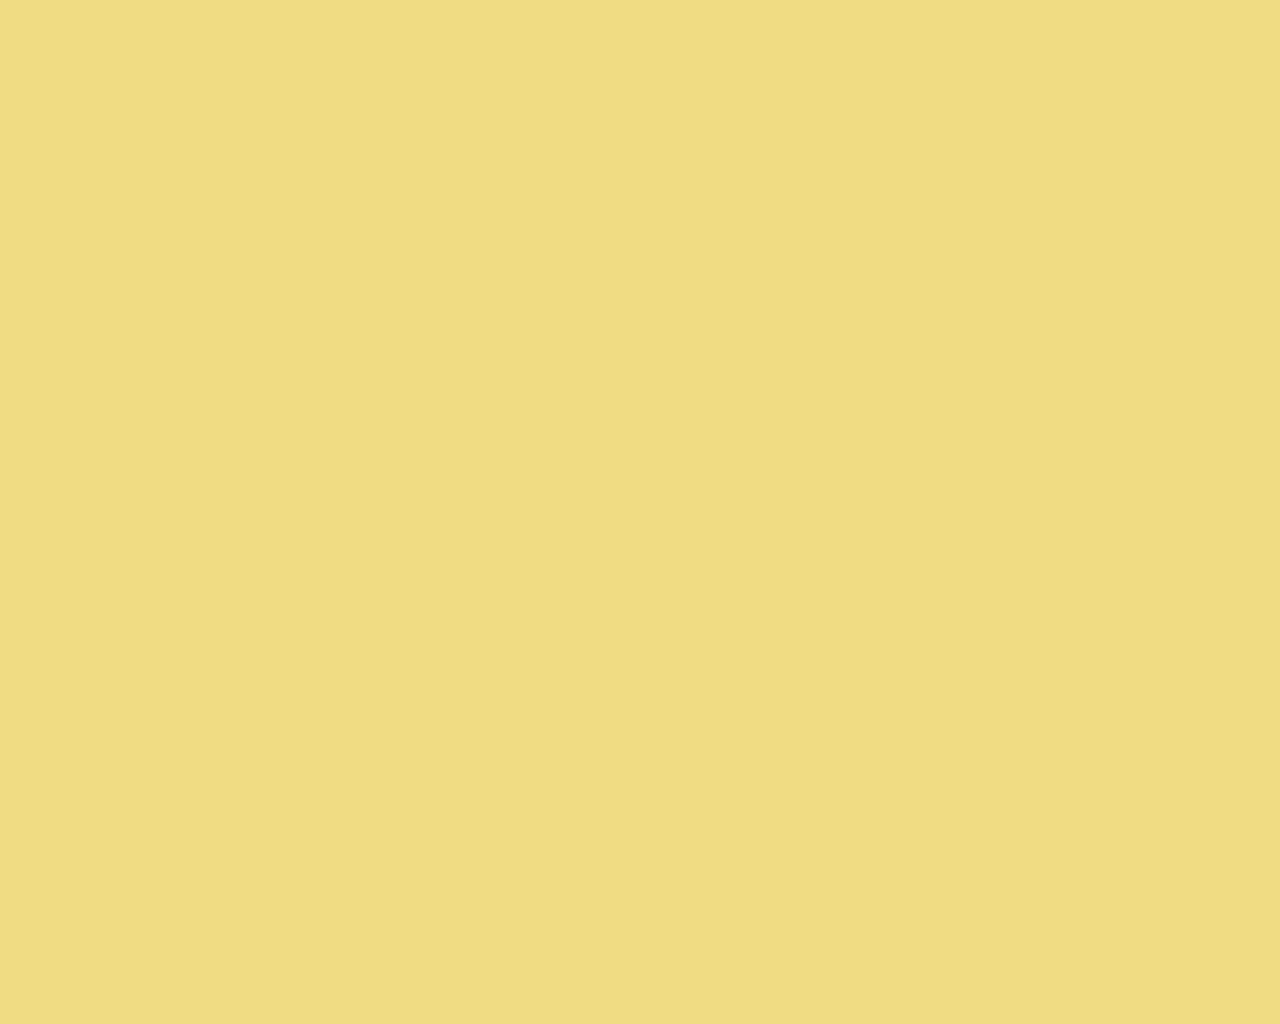 1280x1024 Buff Solid Color Background